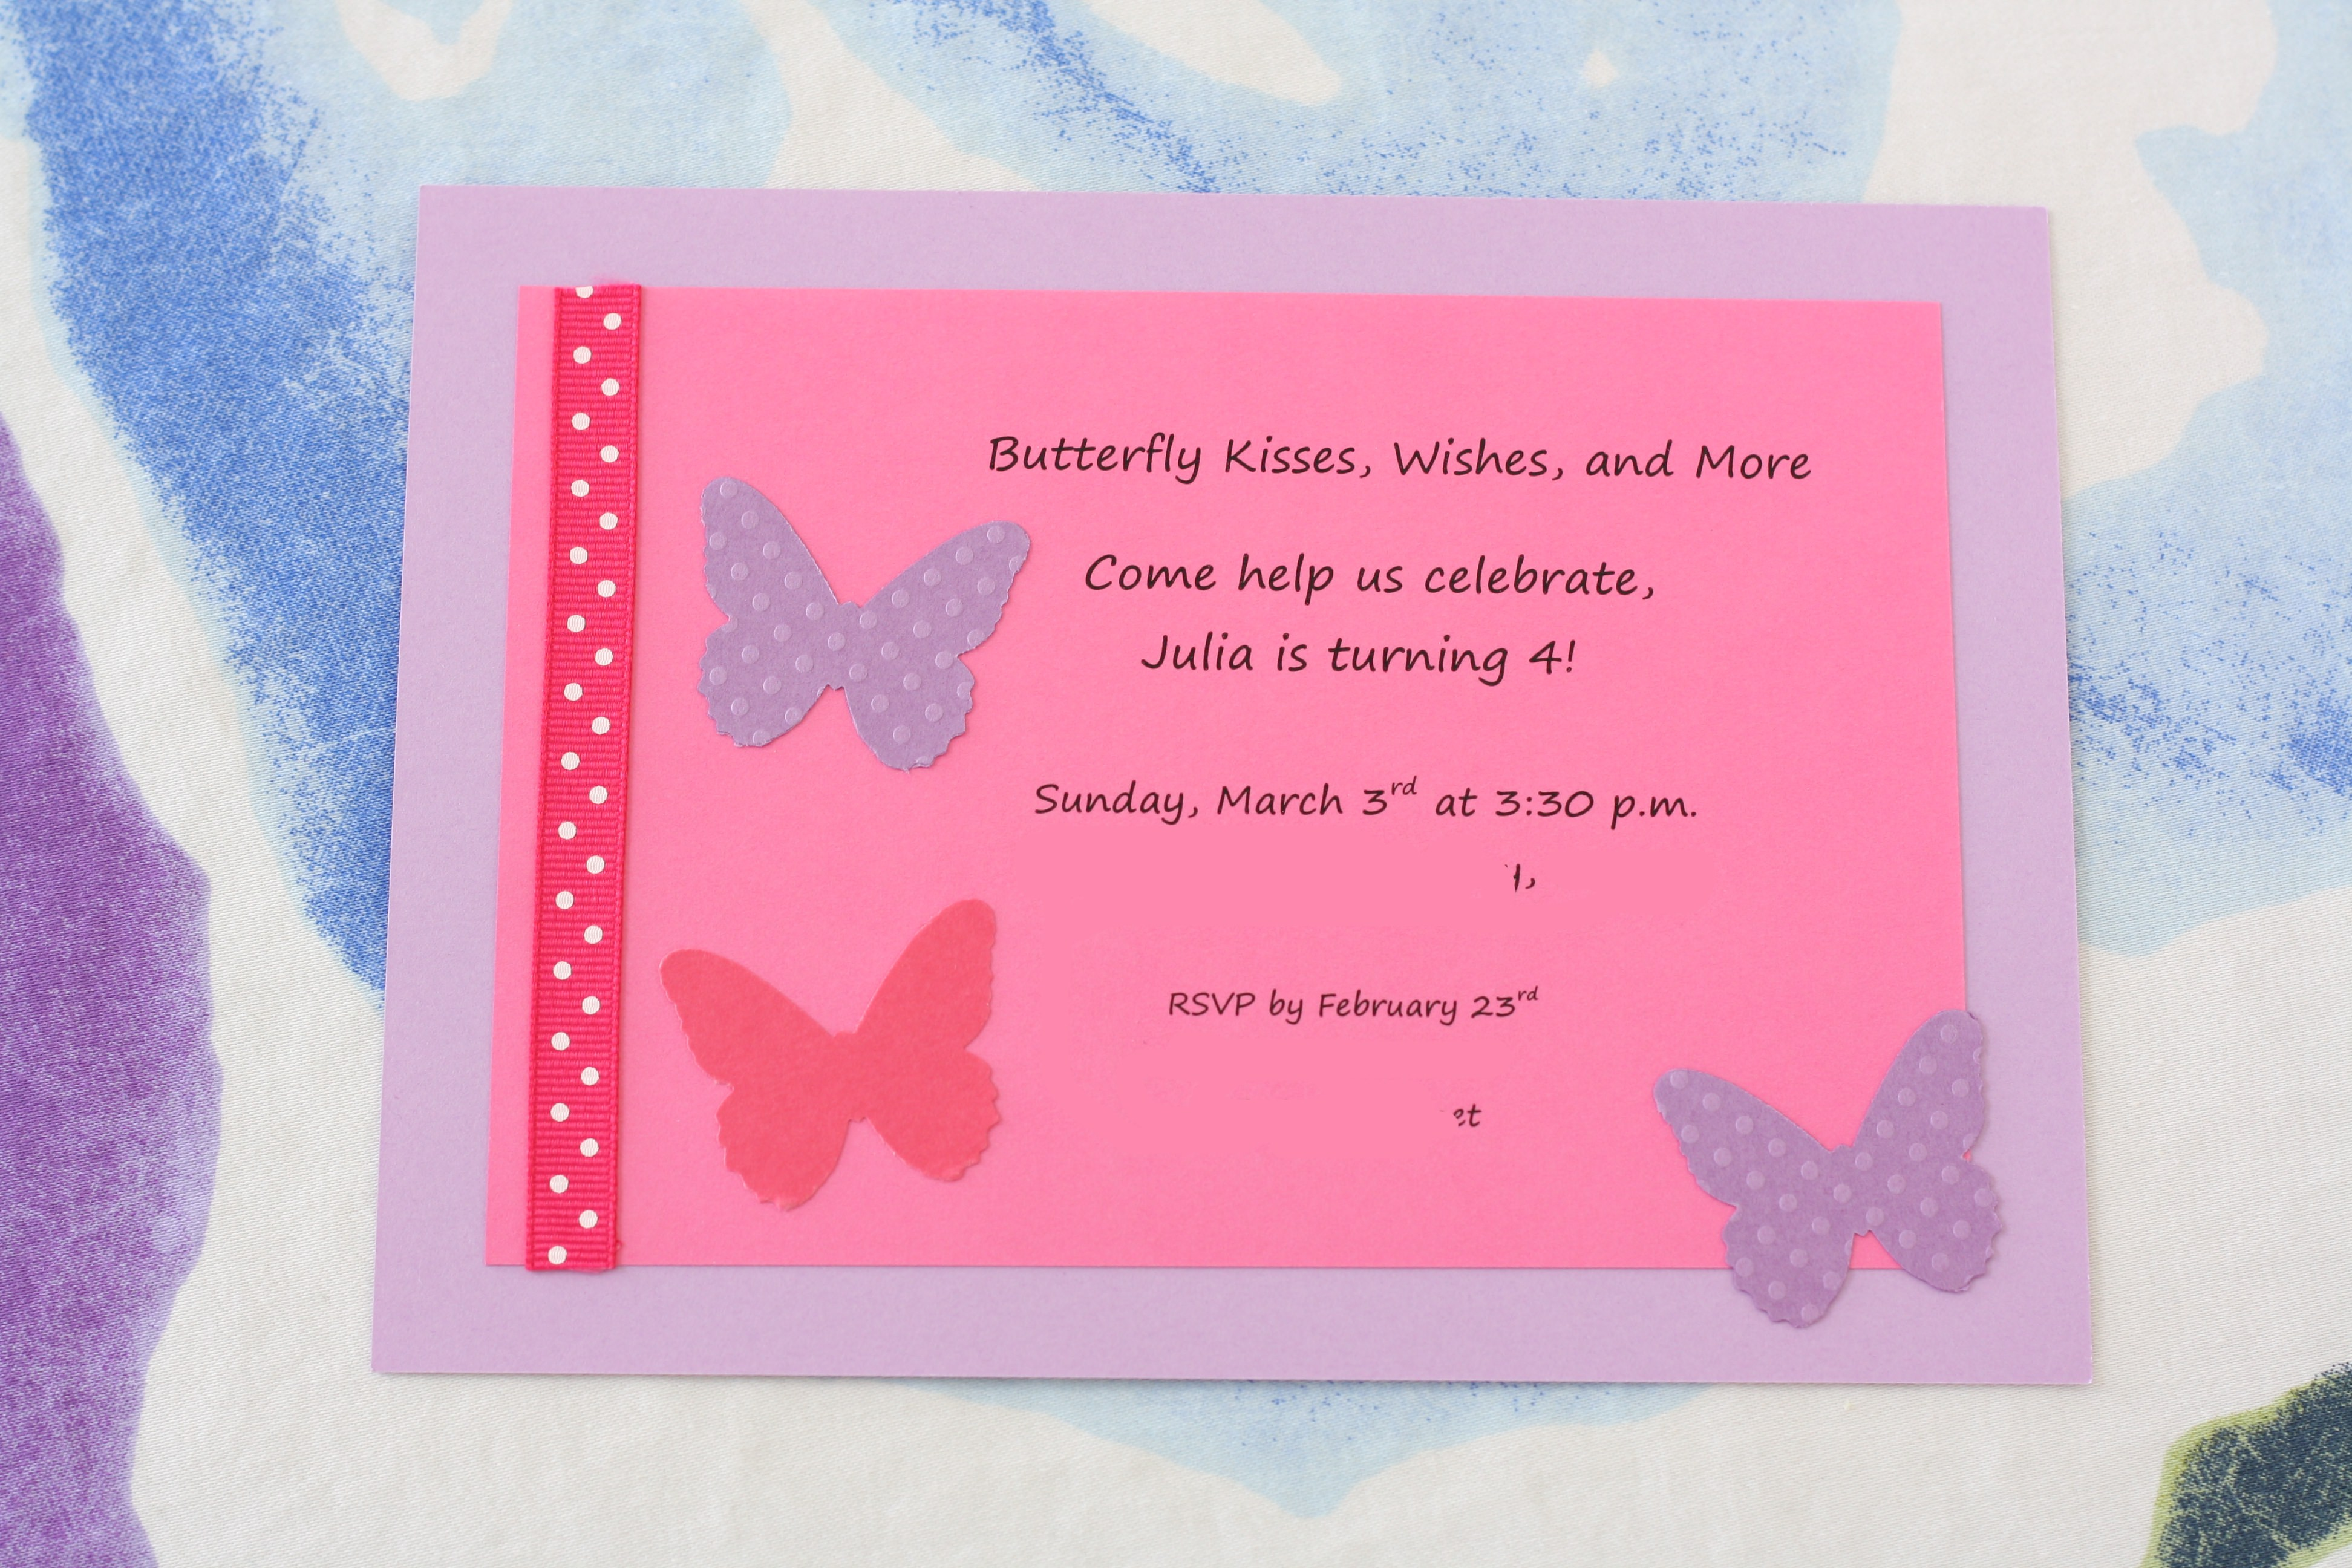 Butterfly Cupcakes for Julias Butterfly Birthday Party – Butterfly Birthday Party Invitations